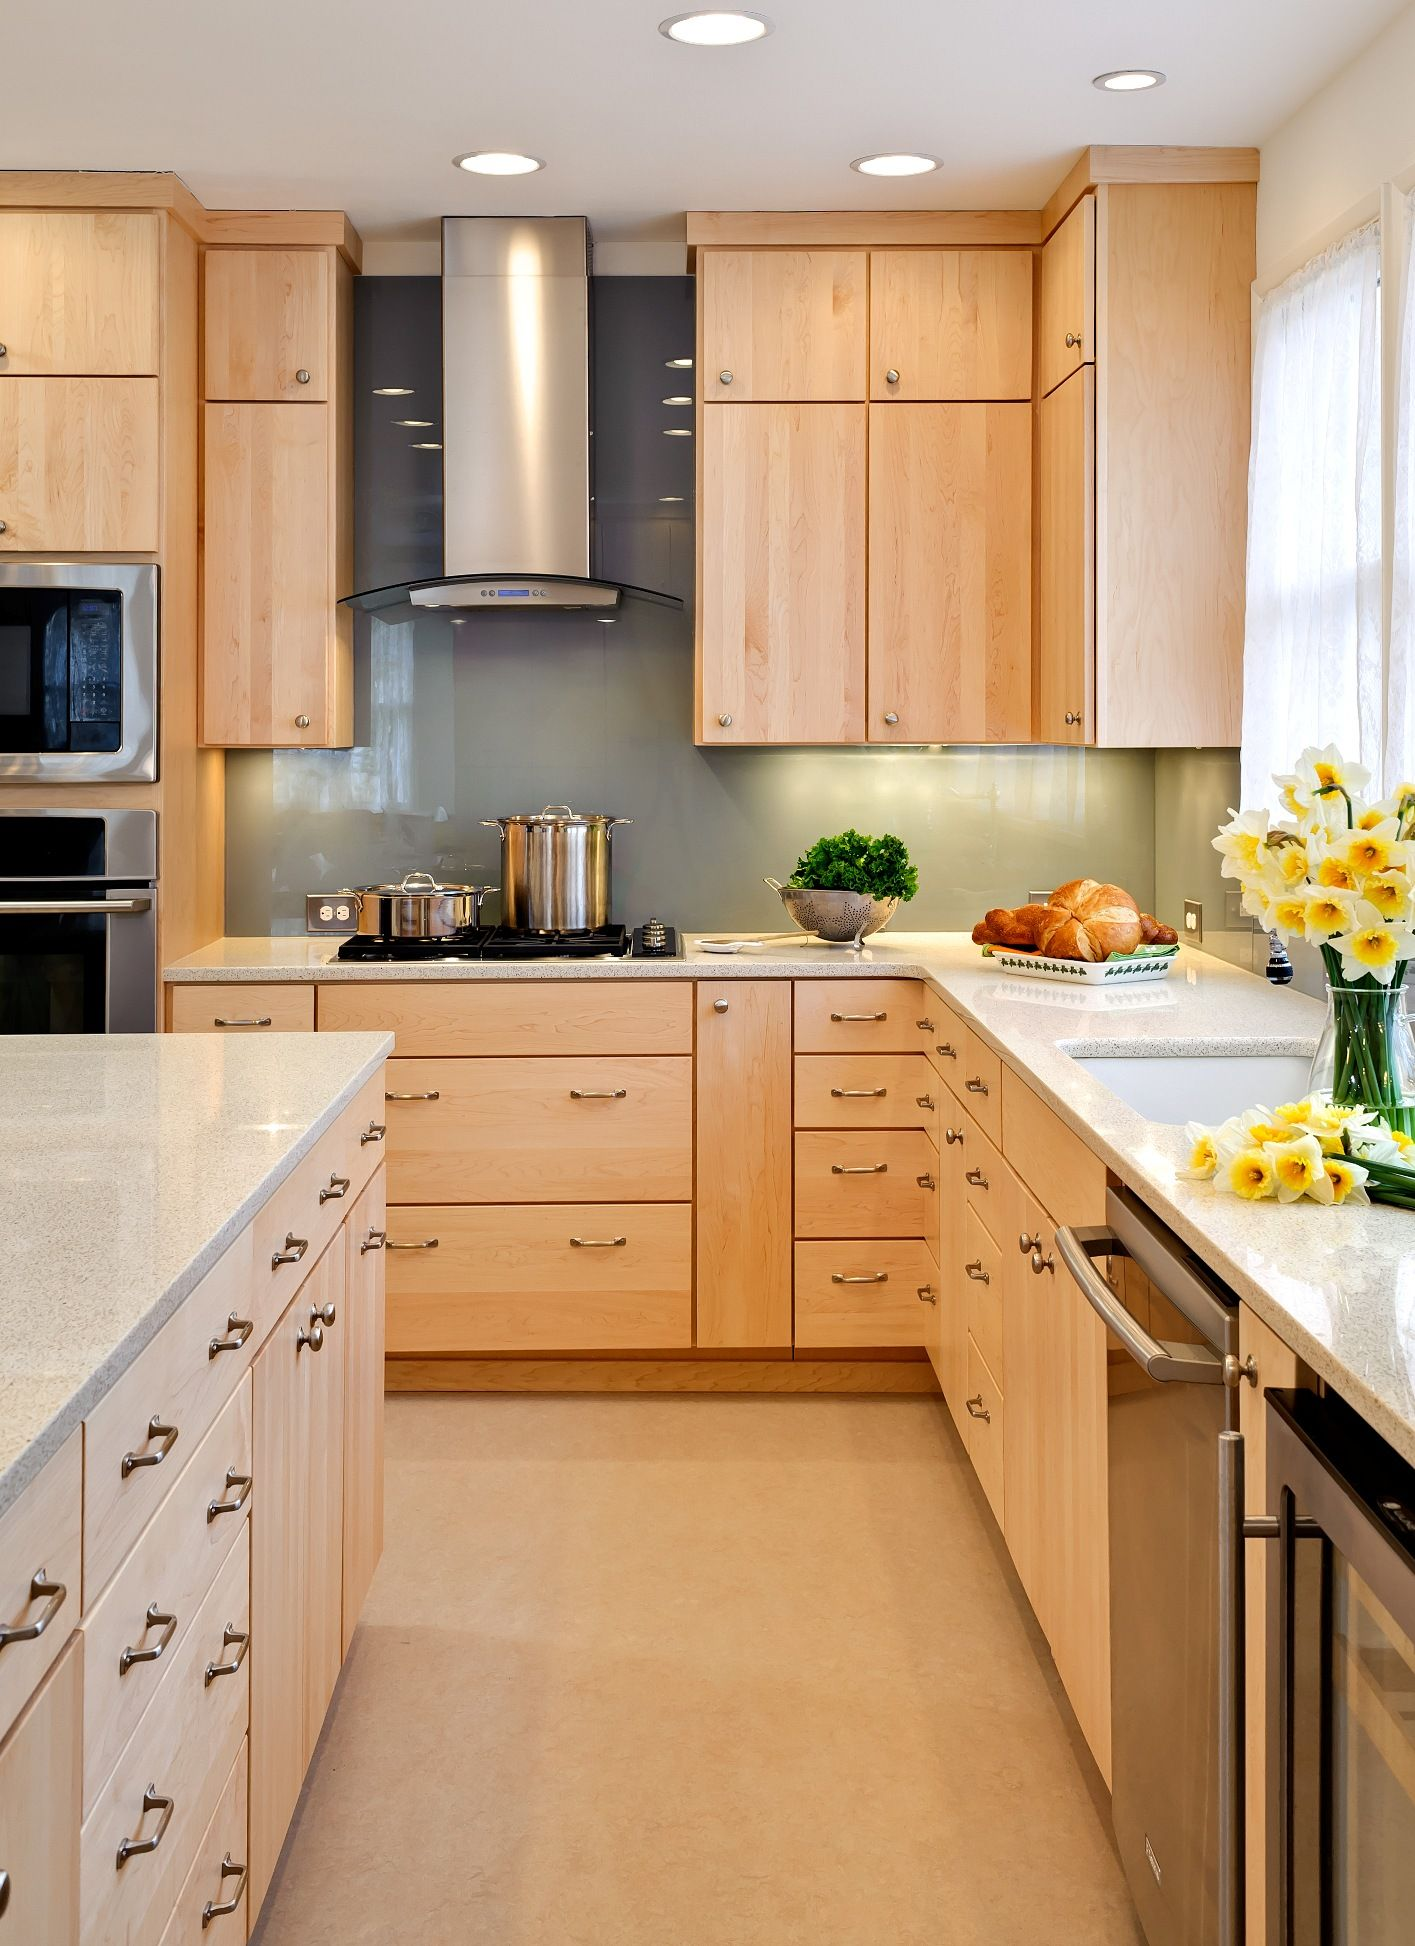 Maple Kitchen Furniture Too Modern But We Could Do Maple Cabinets As Another Option And